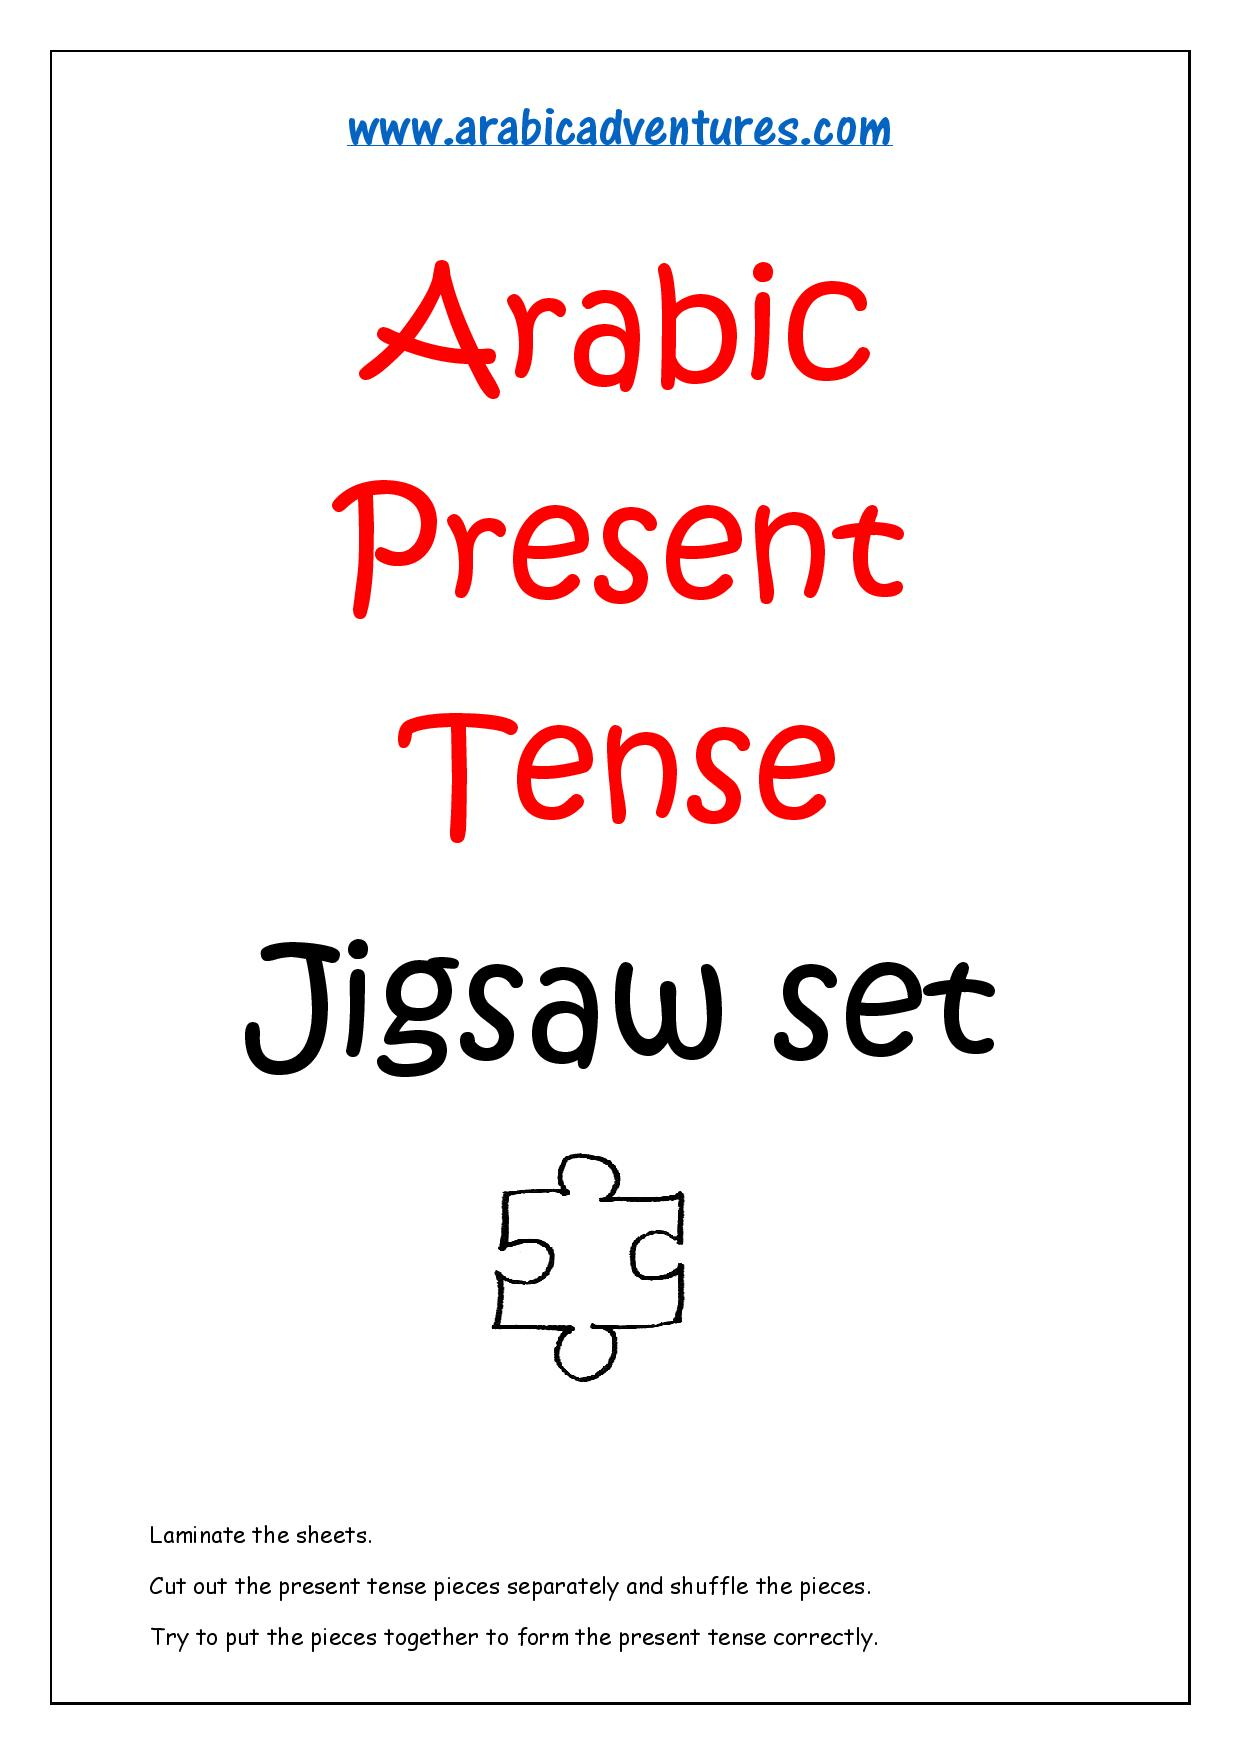 Present tense verbs worksheets pdf writing in the past